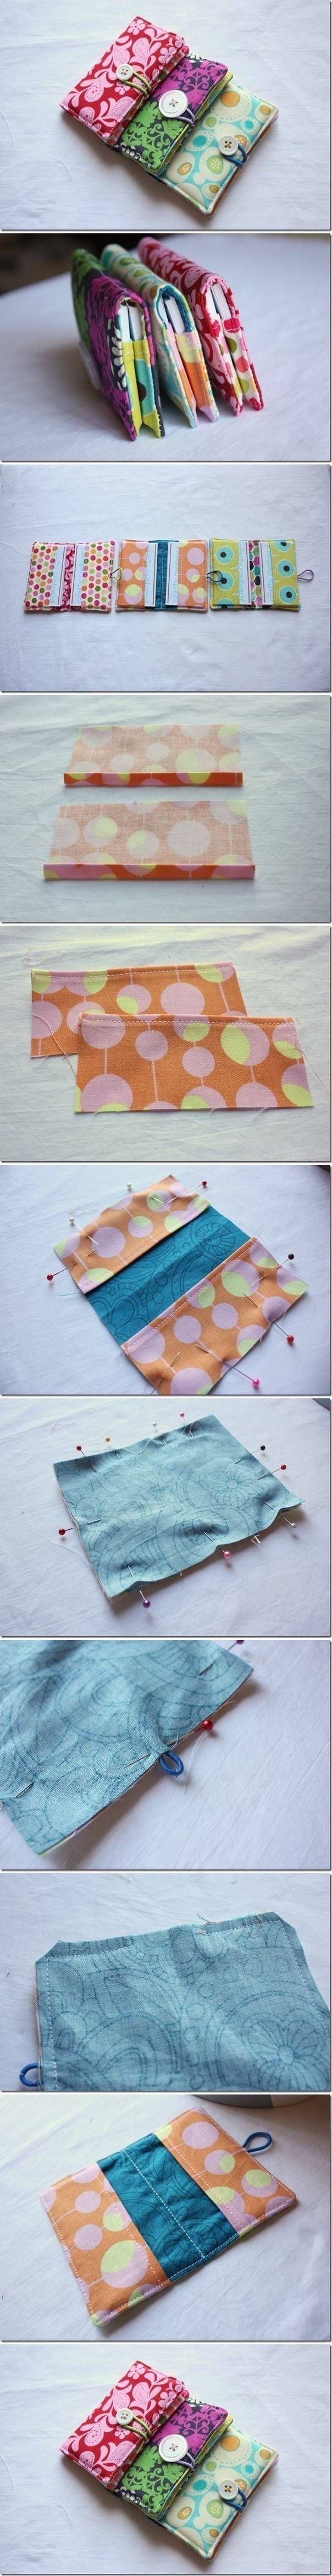 Pin by sabrina cavalleri on cucito creativo pinterest business diy sew business card holder flowers handbag diy crafts home made easy crafts craft idea crafts ideas diy ideas diy crafts diy idea do it yourself diy solutioingenieria Image collections